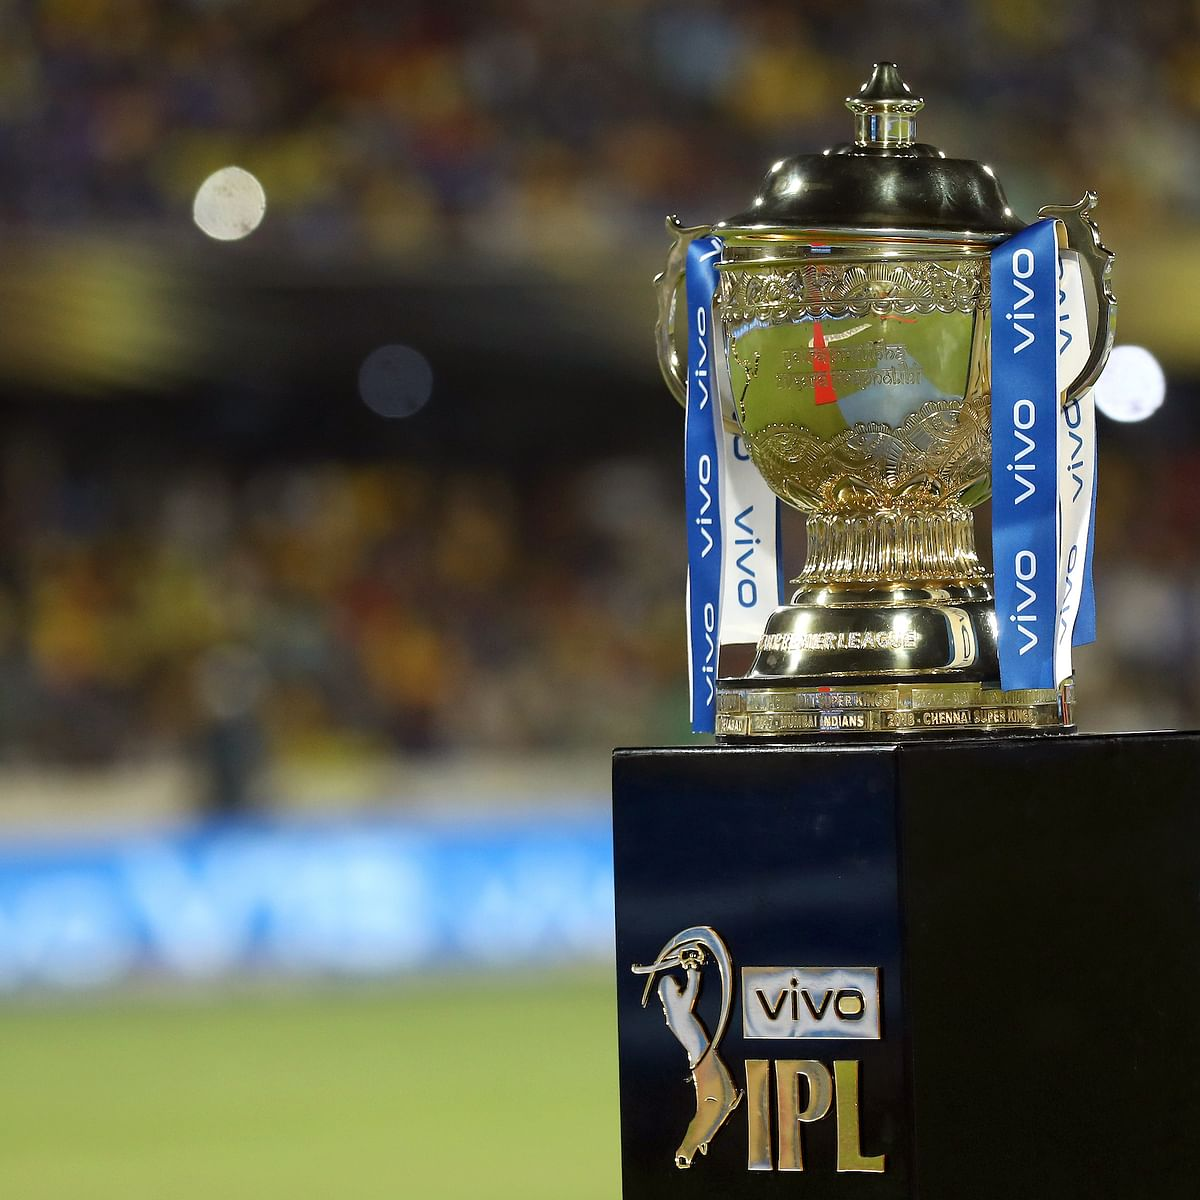 IPL 2021: BCCI announces schedule, final at Narendra Modi Stadium in Ahmedabad on May 30